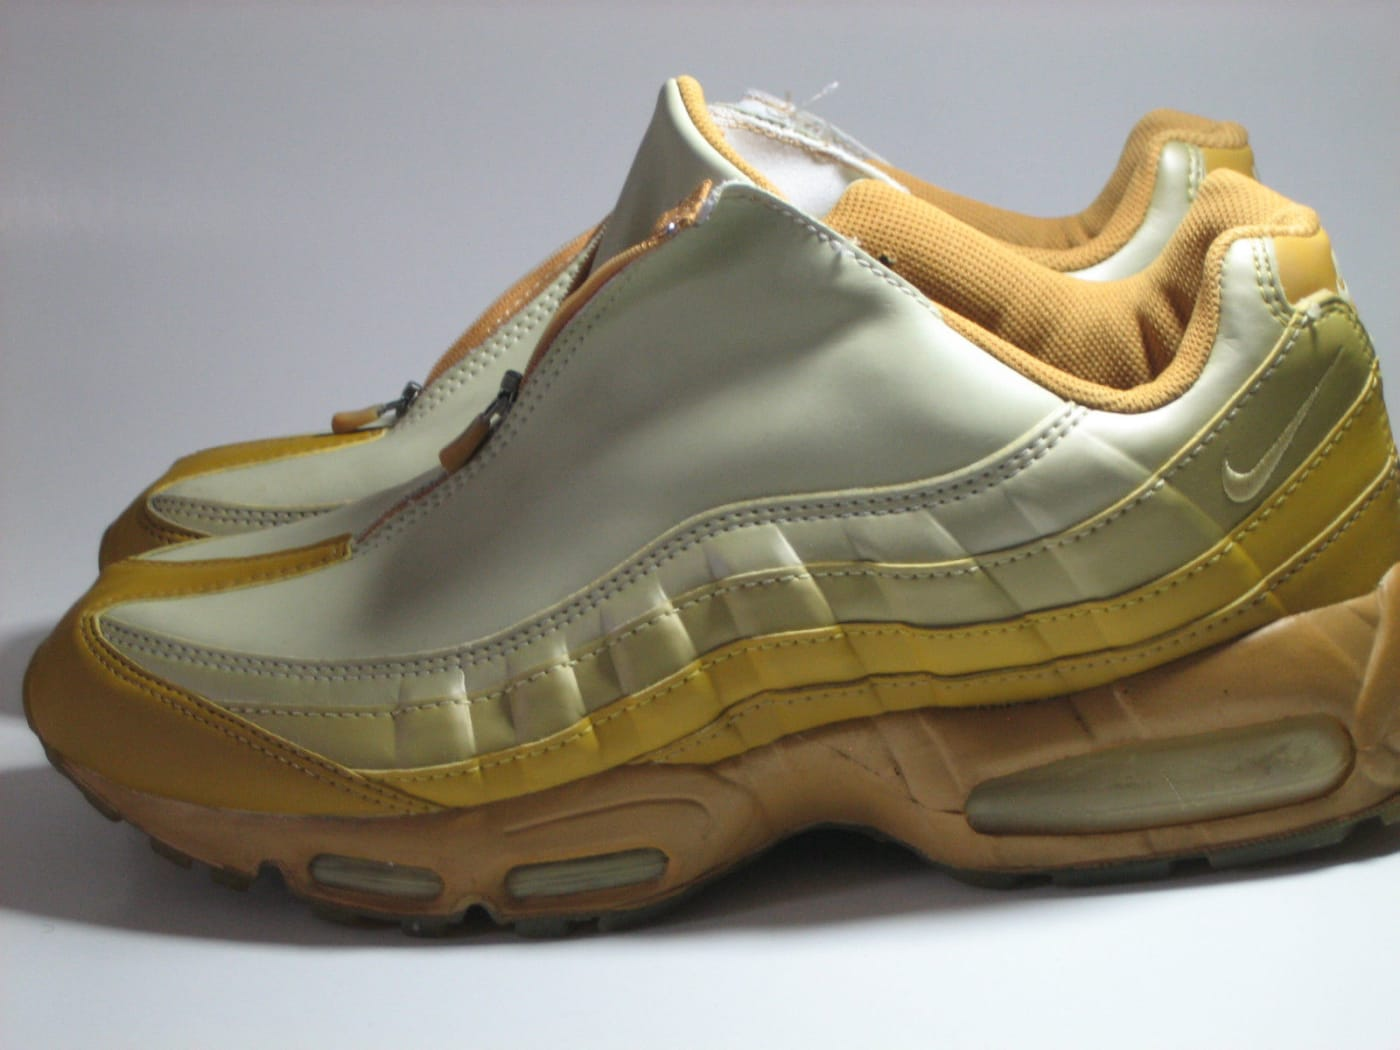 Nike Air Max 95: 20 Things You Didn't Know About the Sneaker | Complex